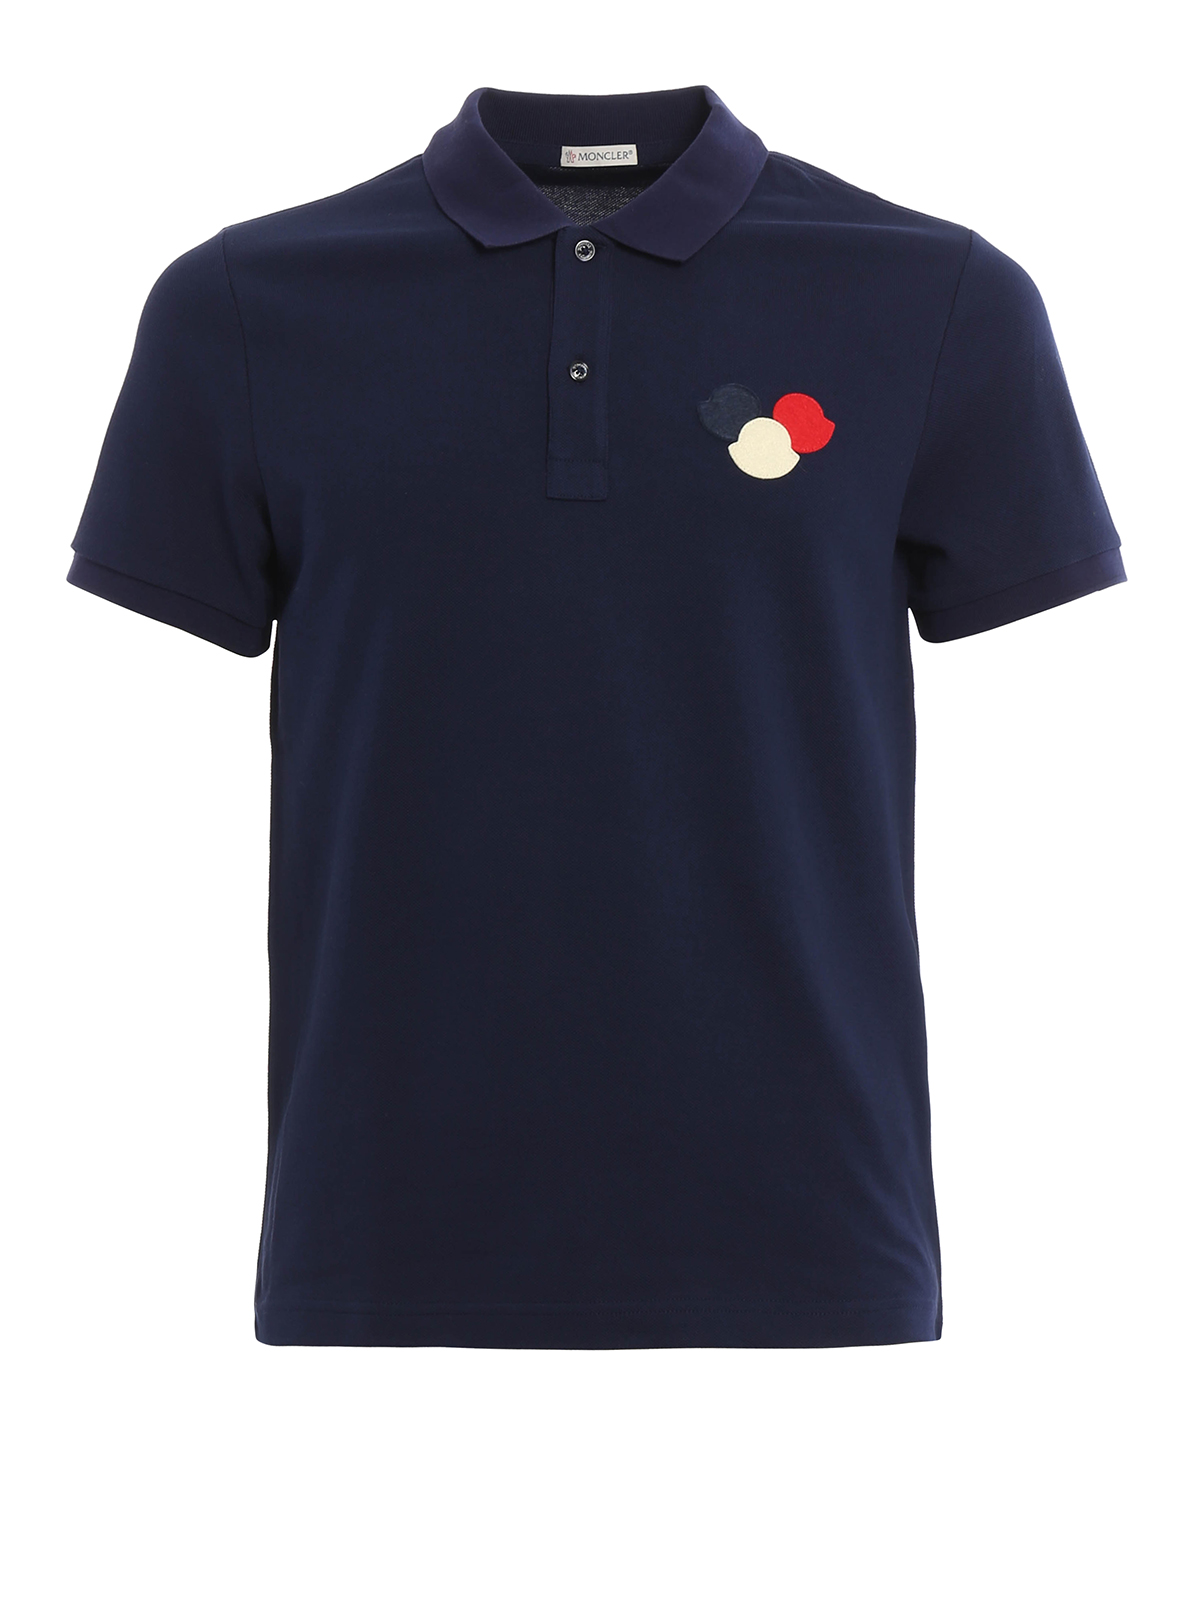 Logo patch cotton pique polo shirt by moncler polo for Order polo shirts with logo